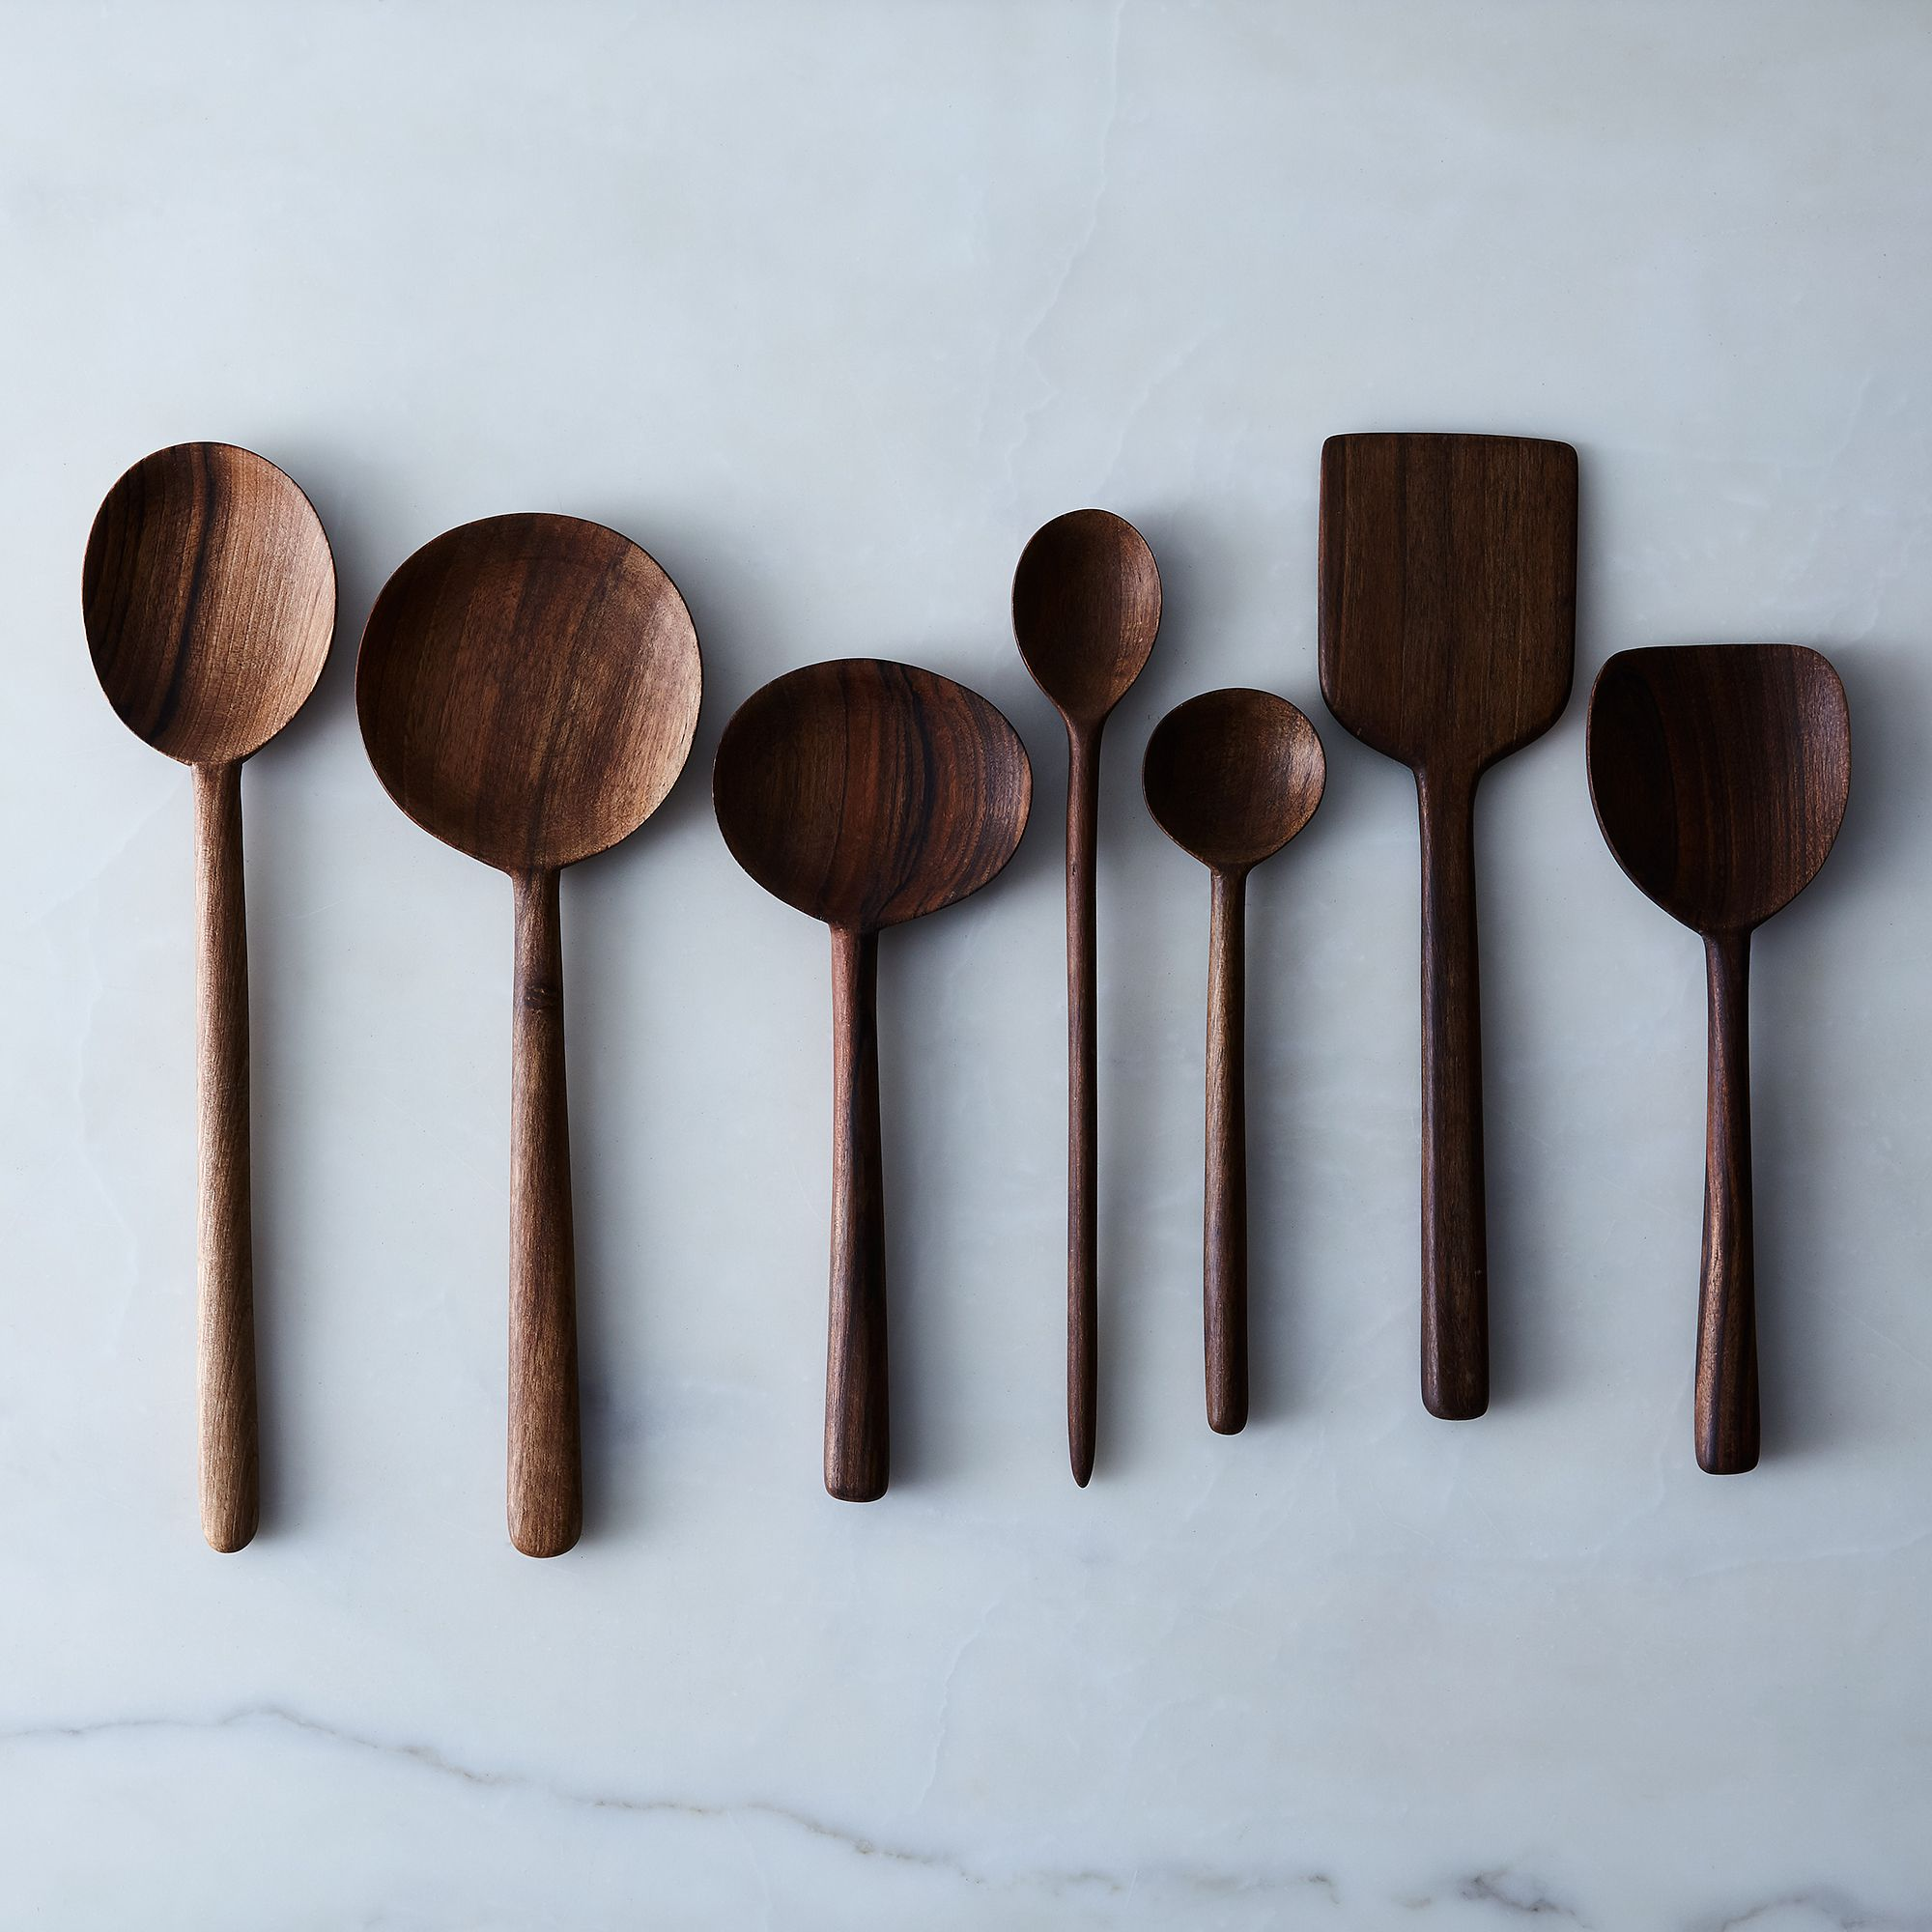 Cooking Utensils, Kitchen - Food52 Shop